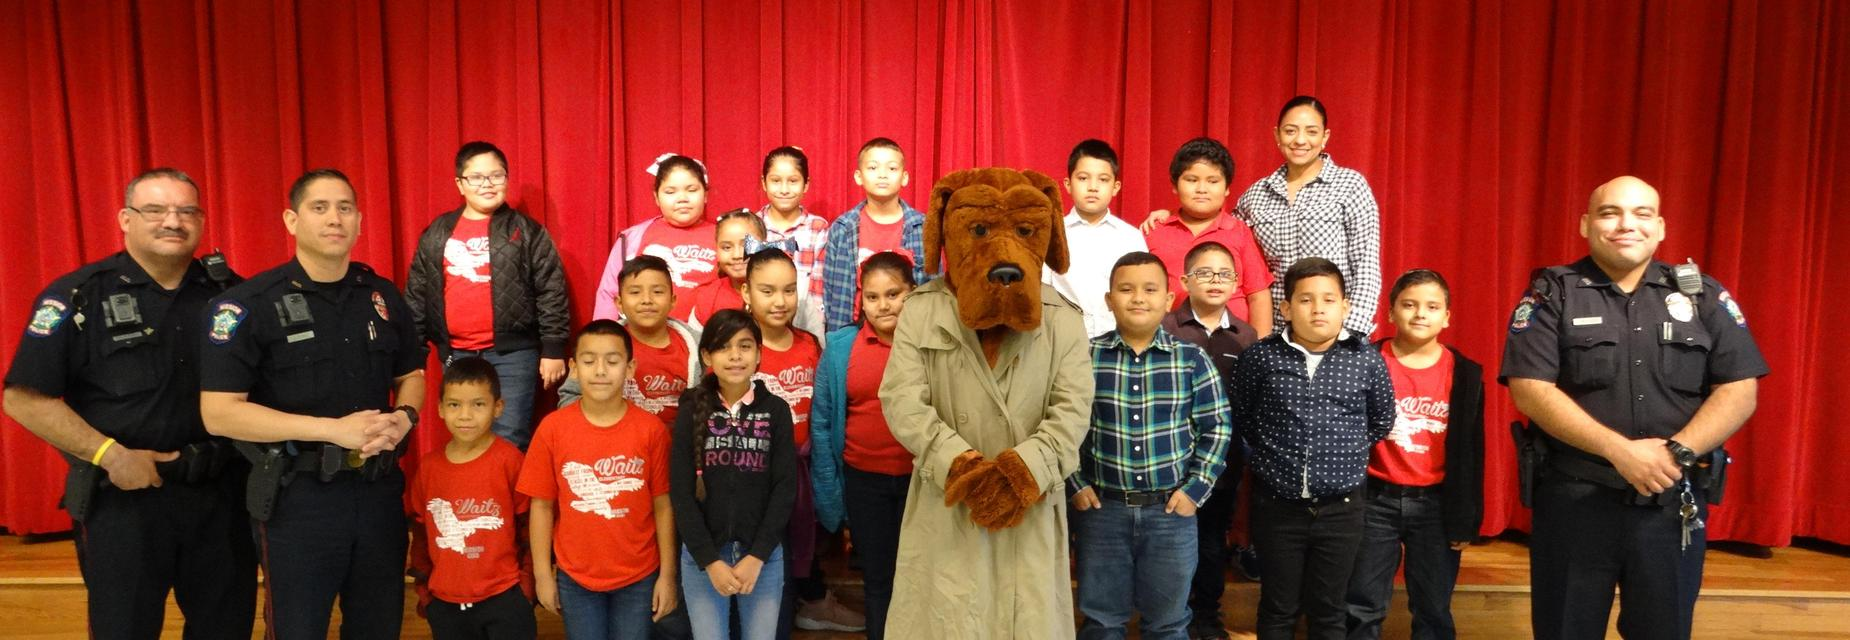 Red Ribbon Week McGruff